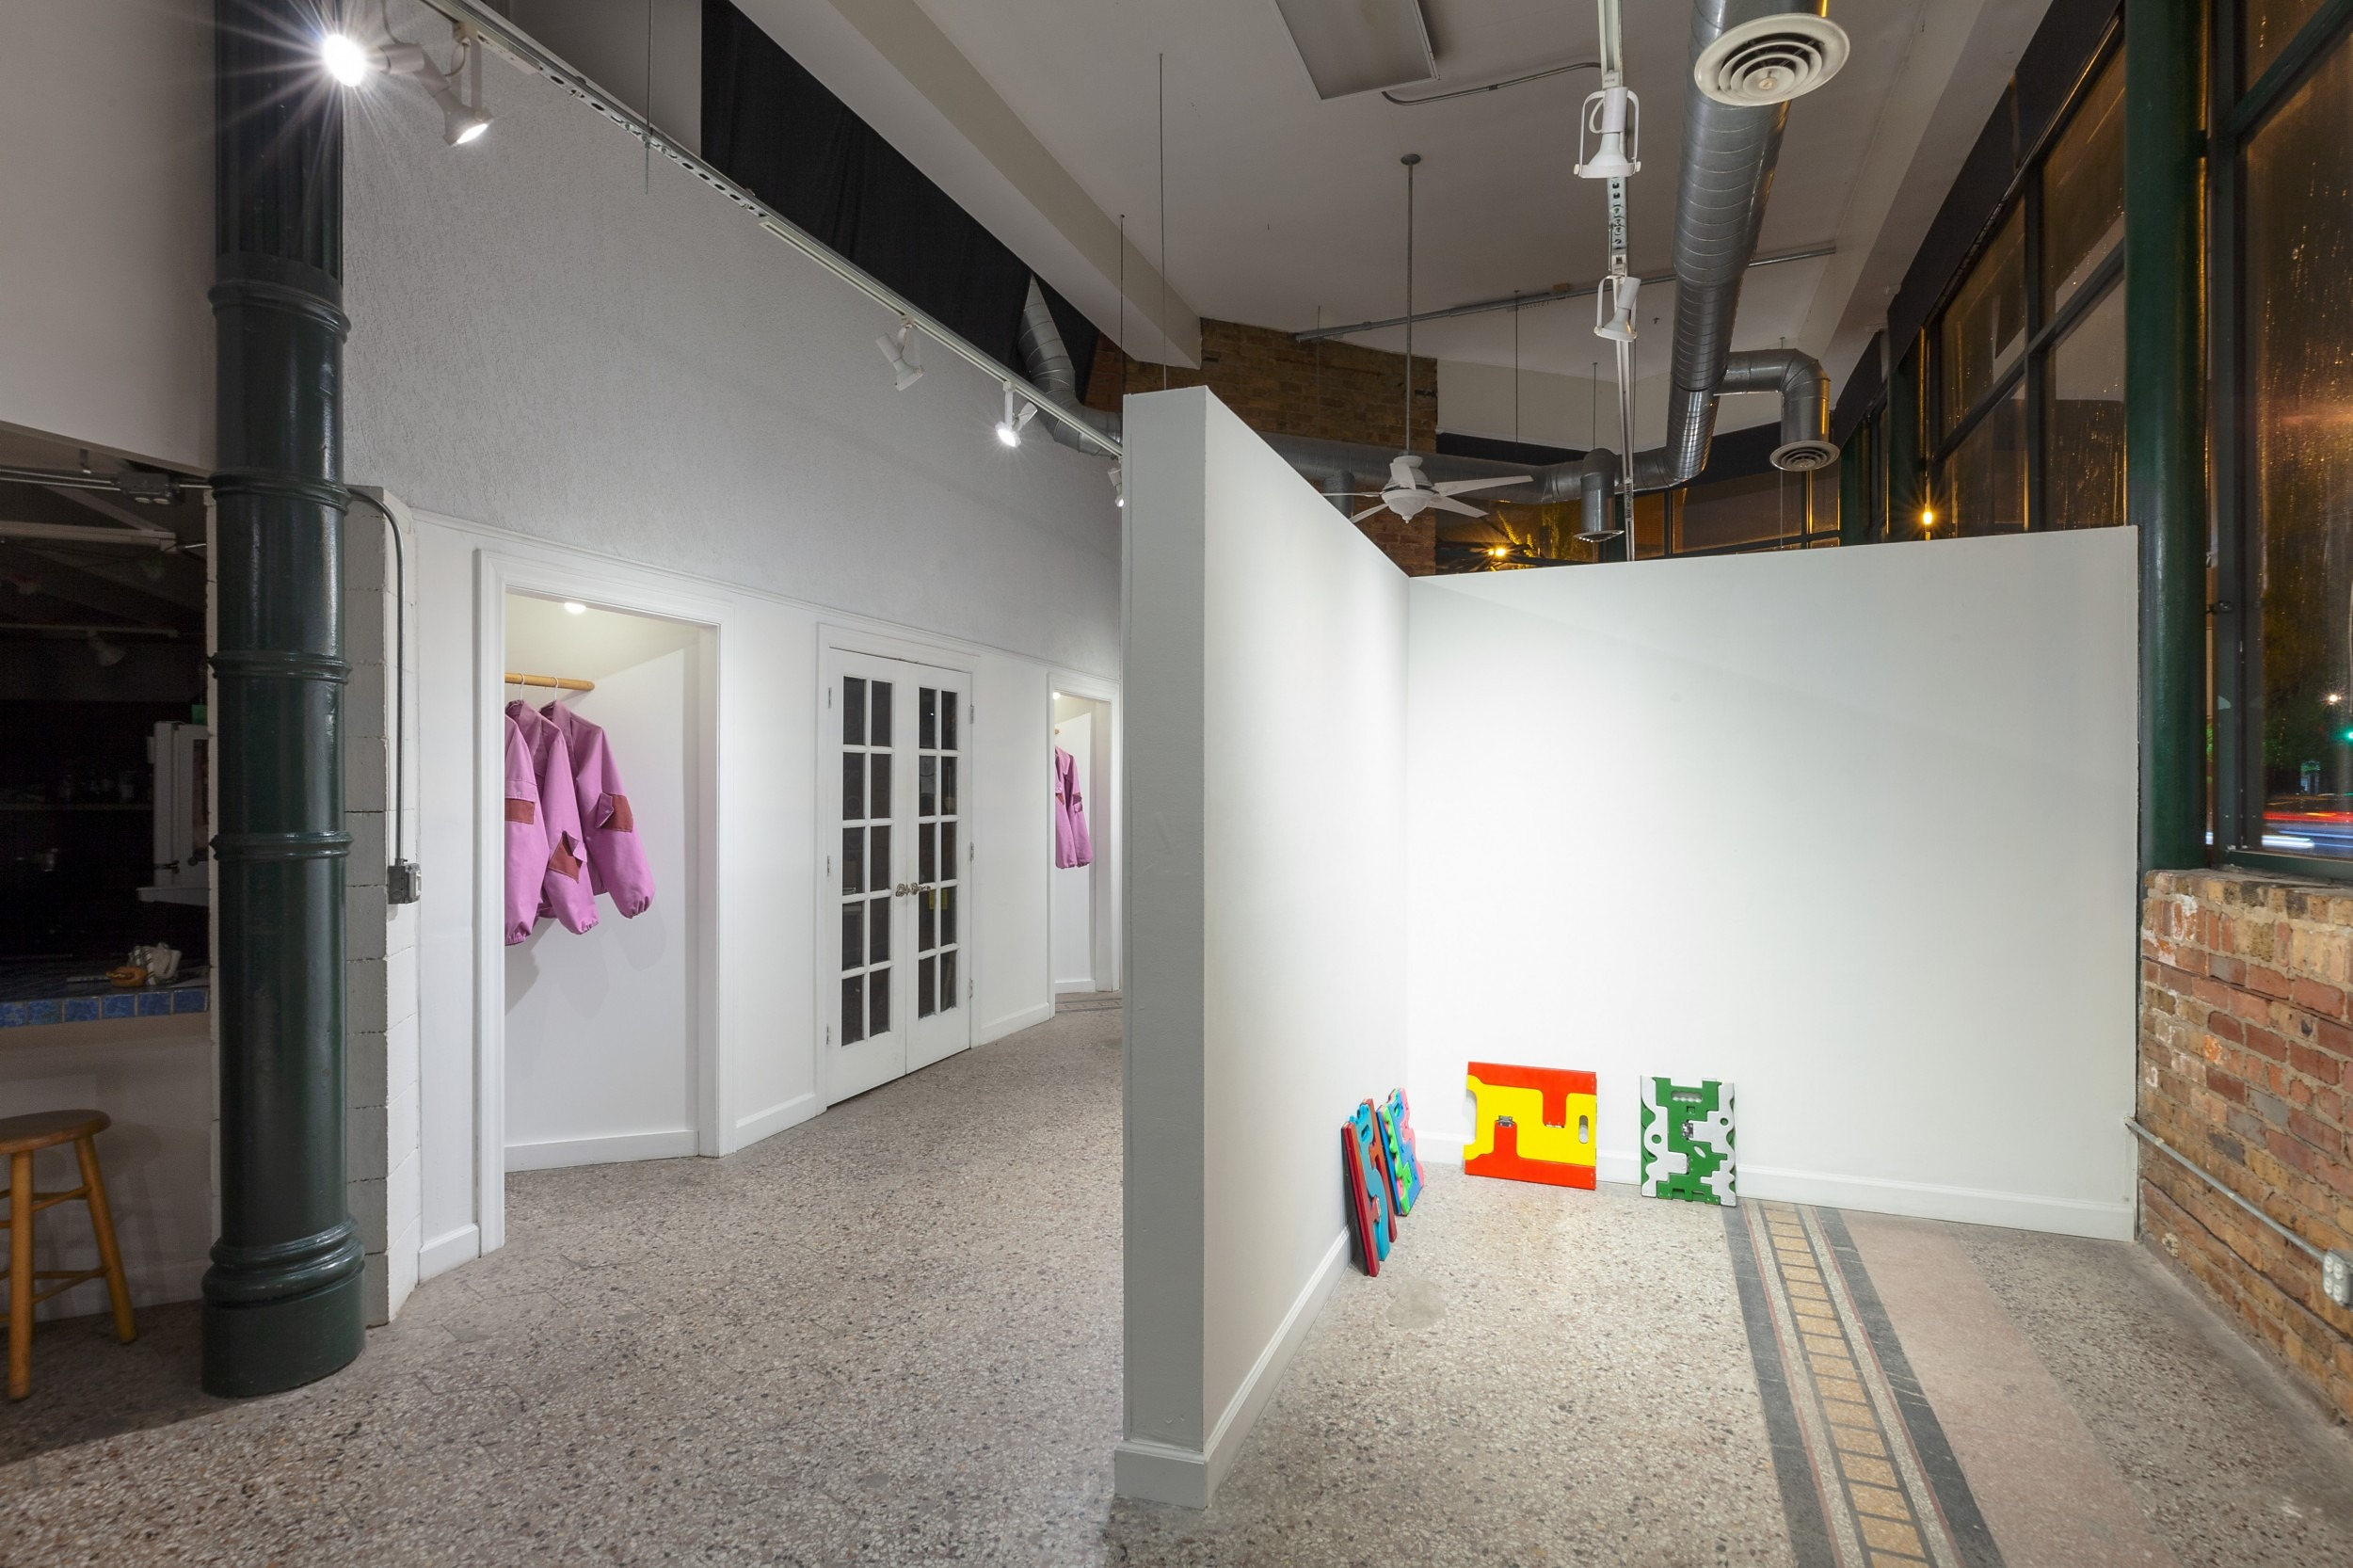 Dan Miller and Aaron Walker, Handkerchiefs and Flowers, 2018 Installation view, Roots & Culture, Chicago, IL, April–May 2018